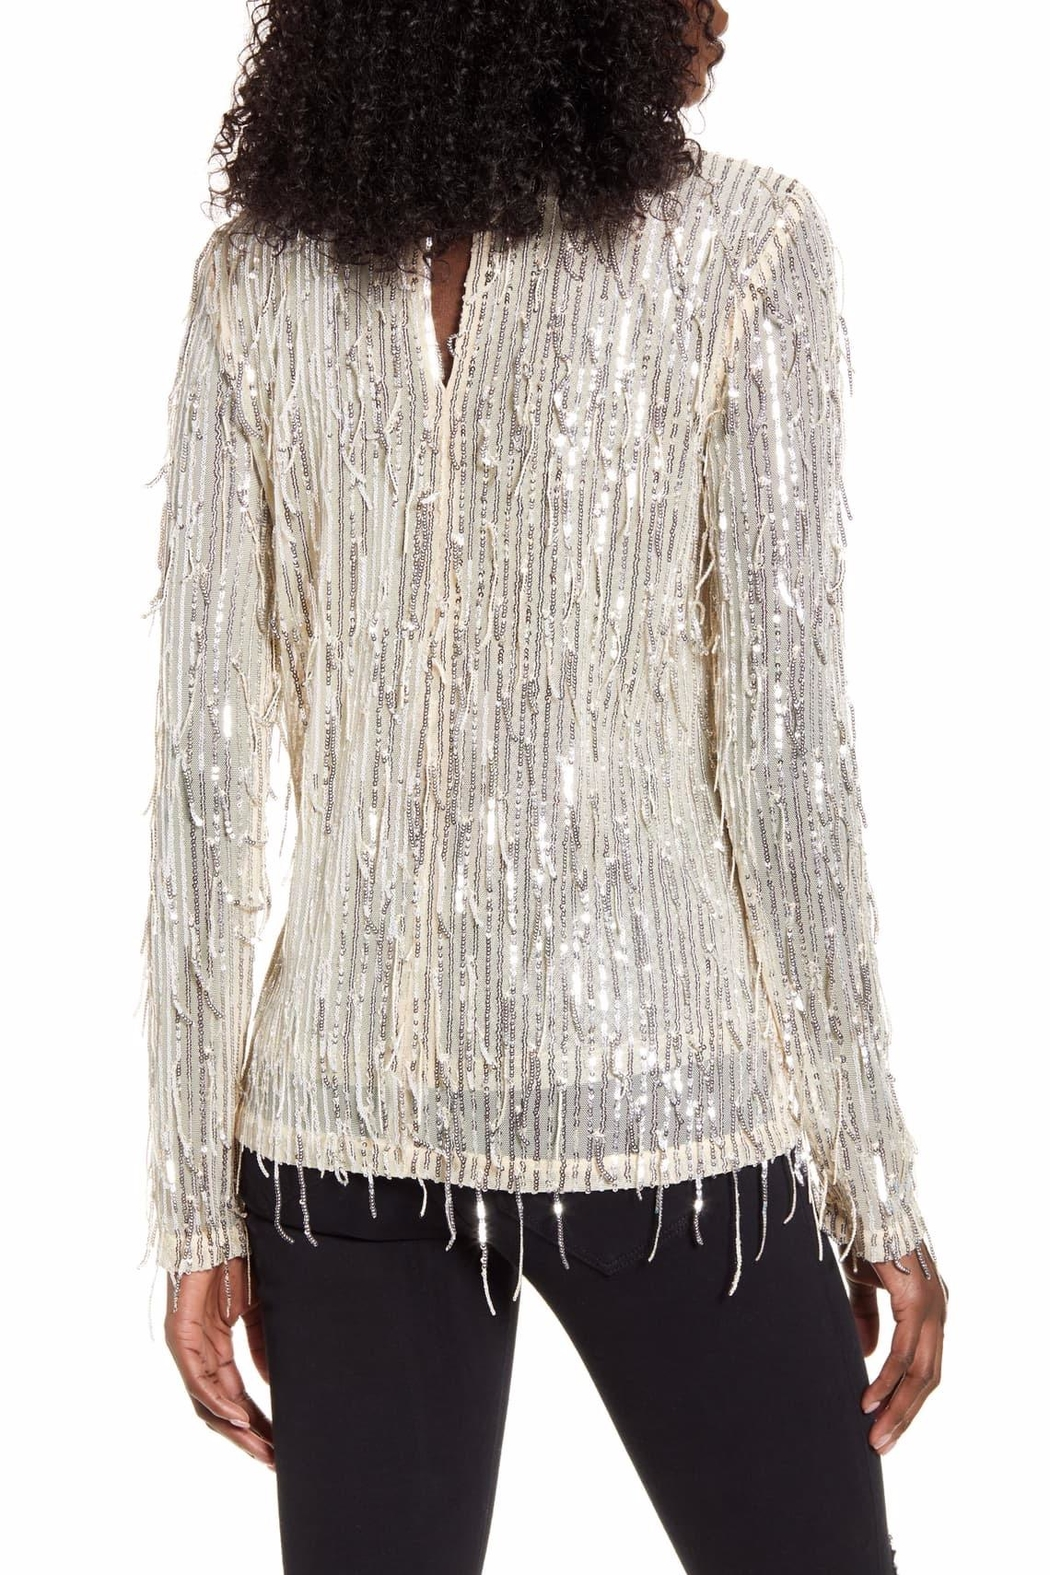 Endless Rose Stella Sequin-Fringe Top - Front Full Image